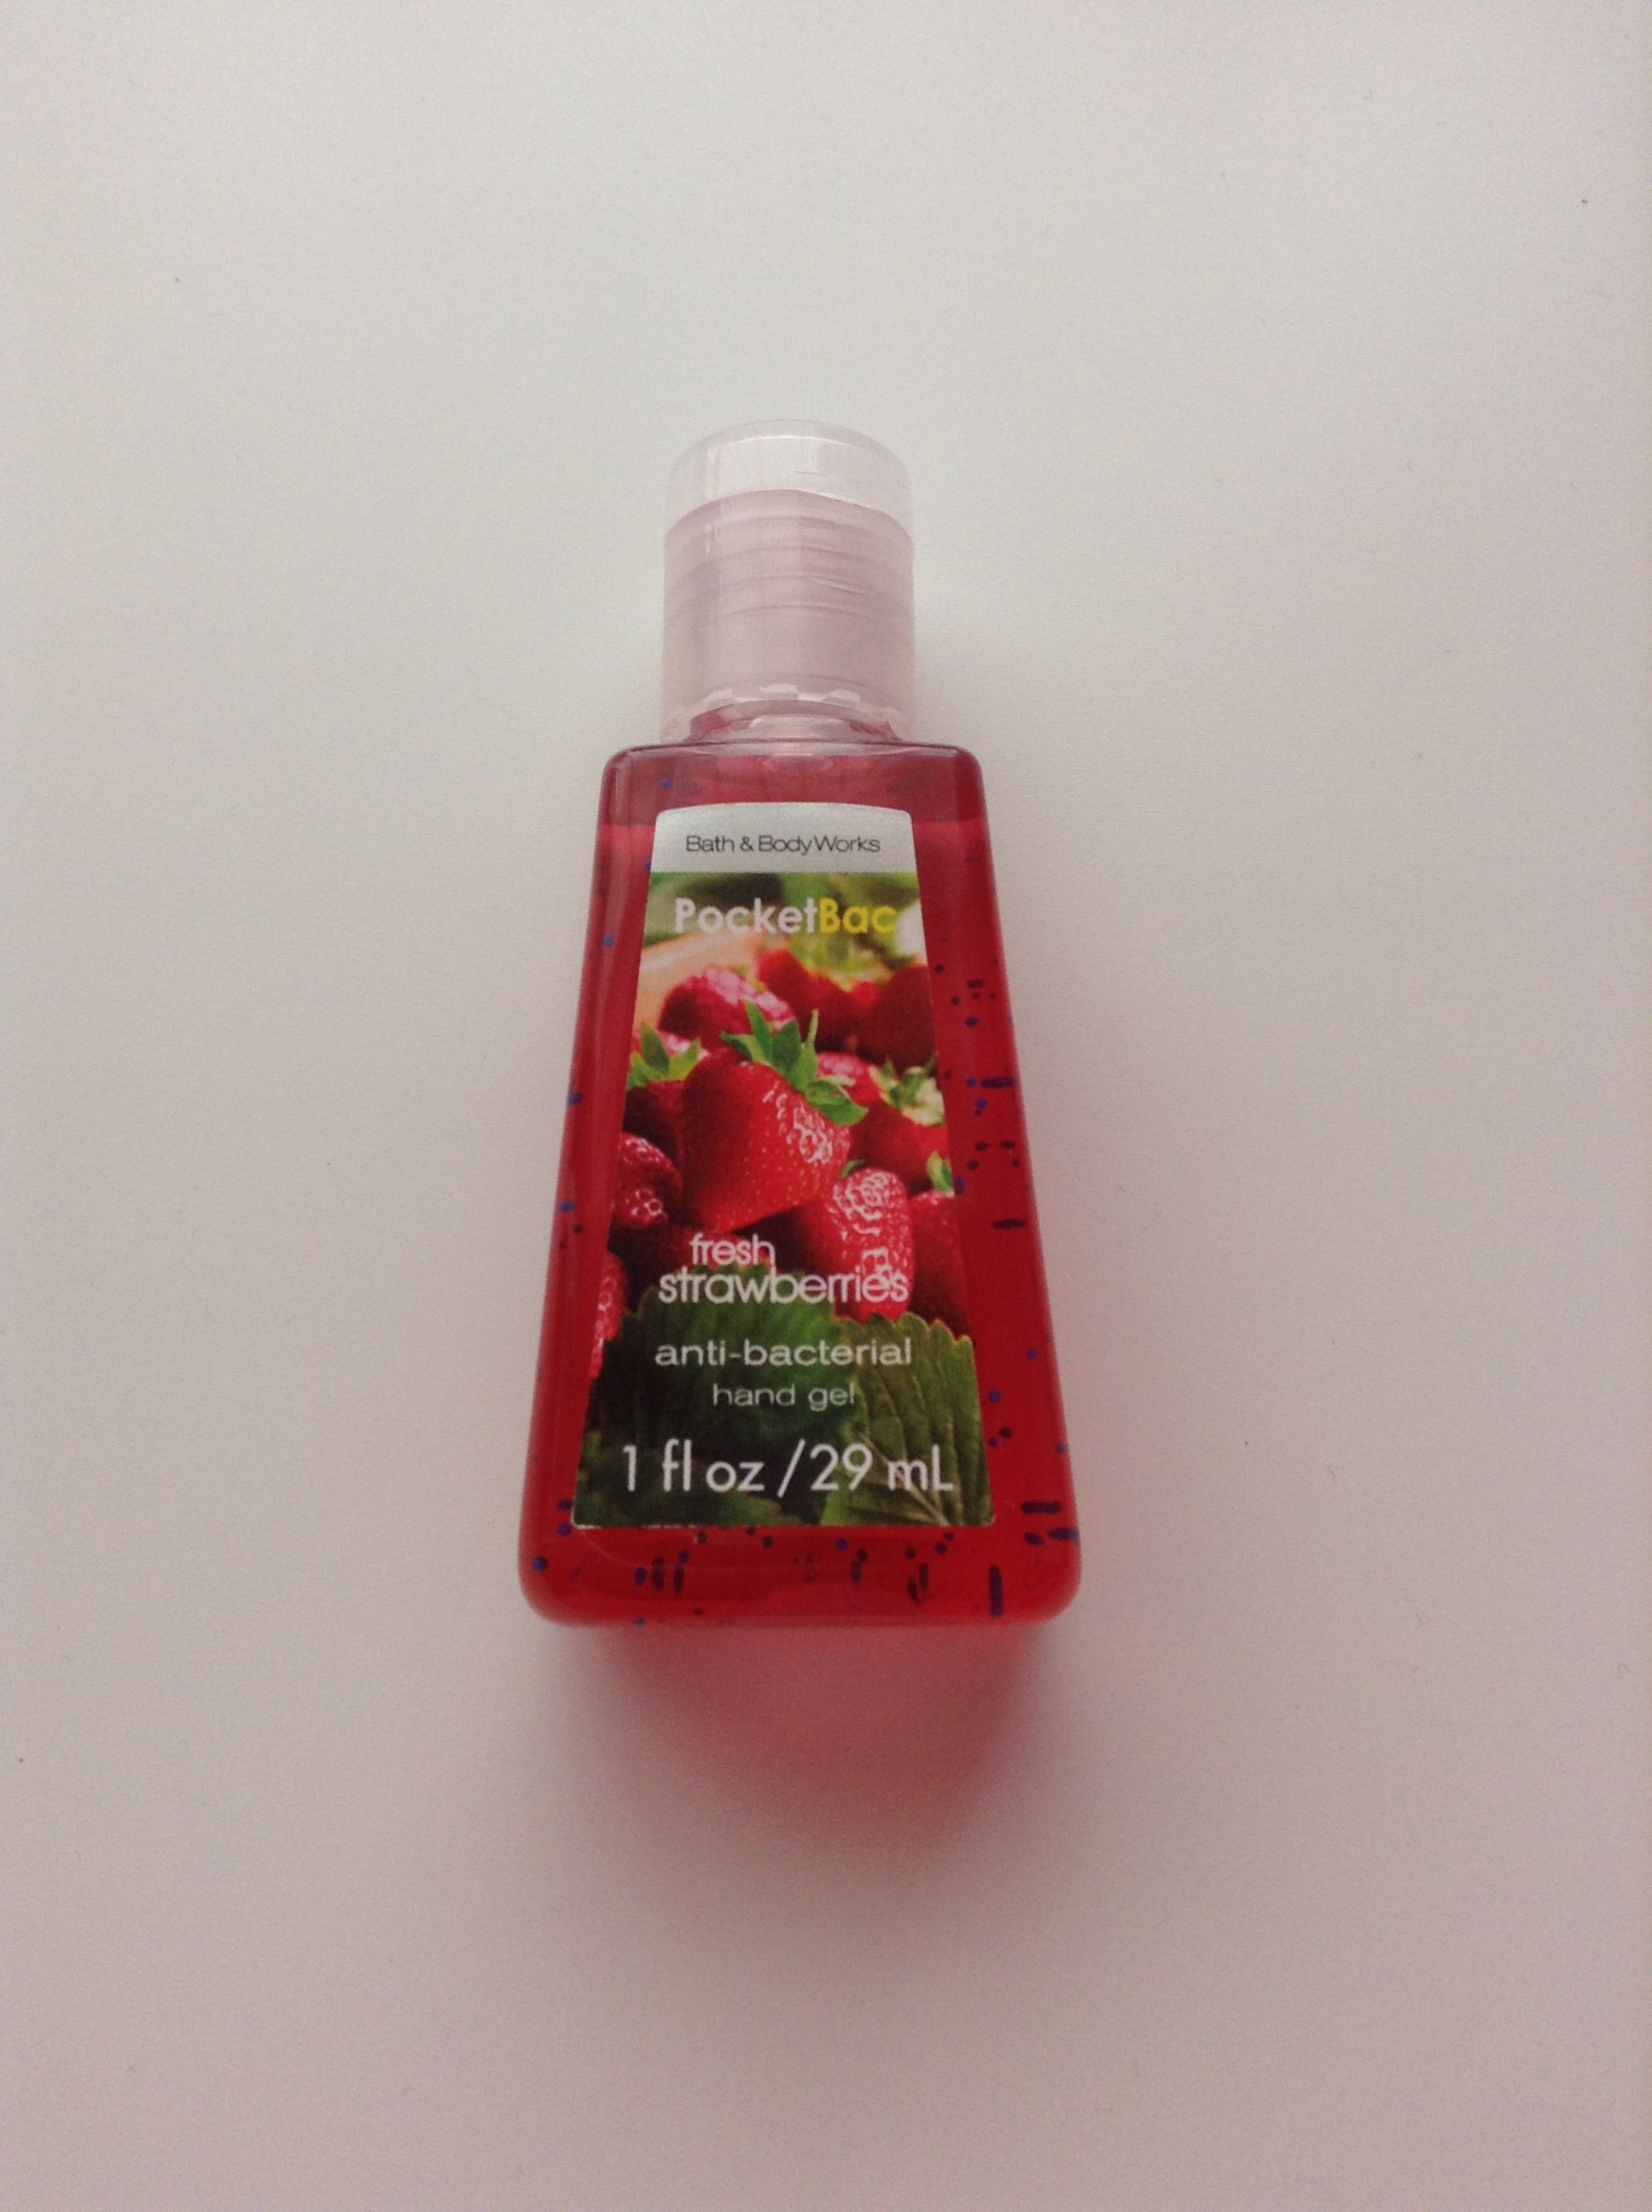 Fight Germs And Promote Your Brand Fast 24hr Handsanitizer